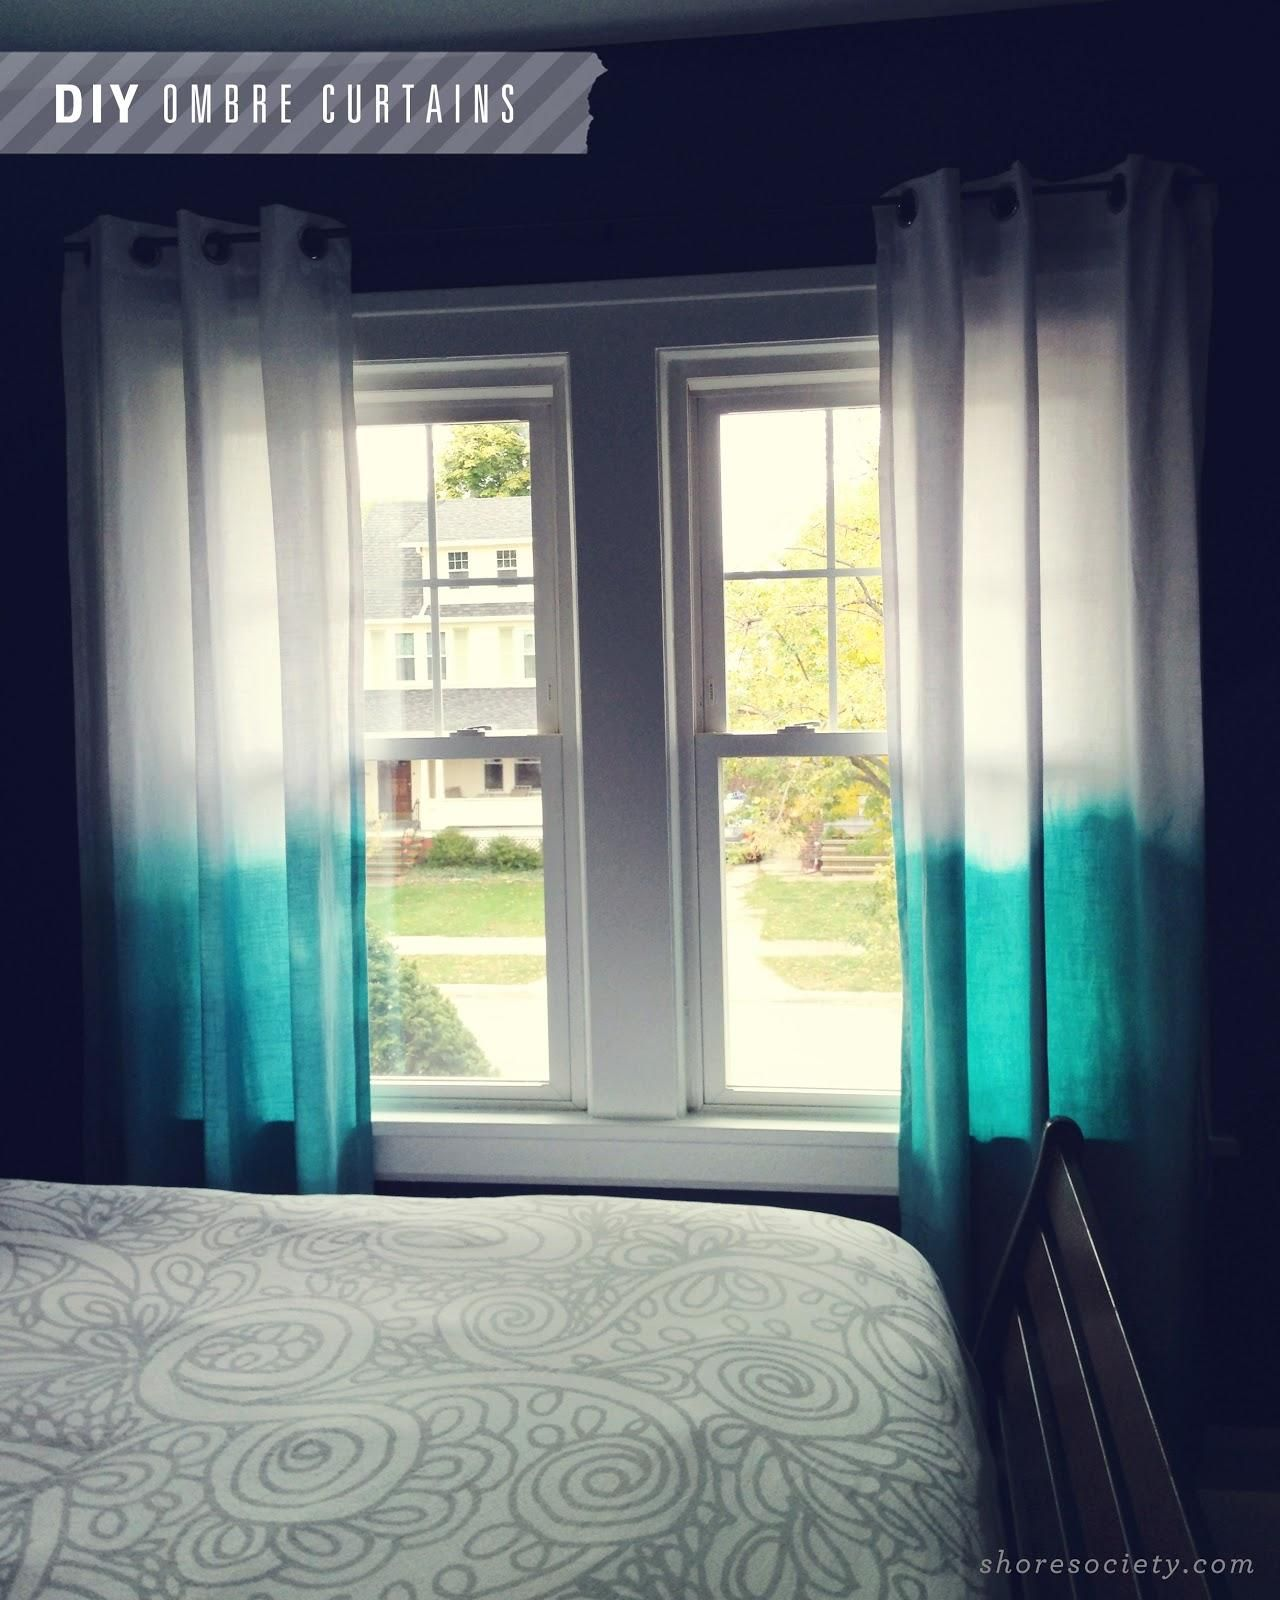 DIY Ombre Curtains for the new apartment, needs some